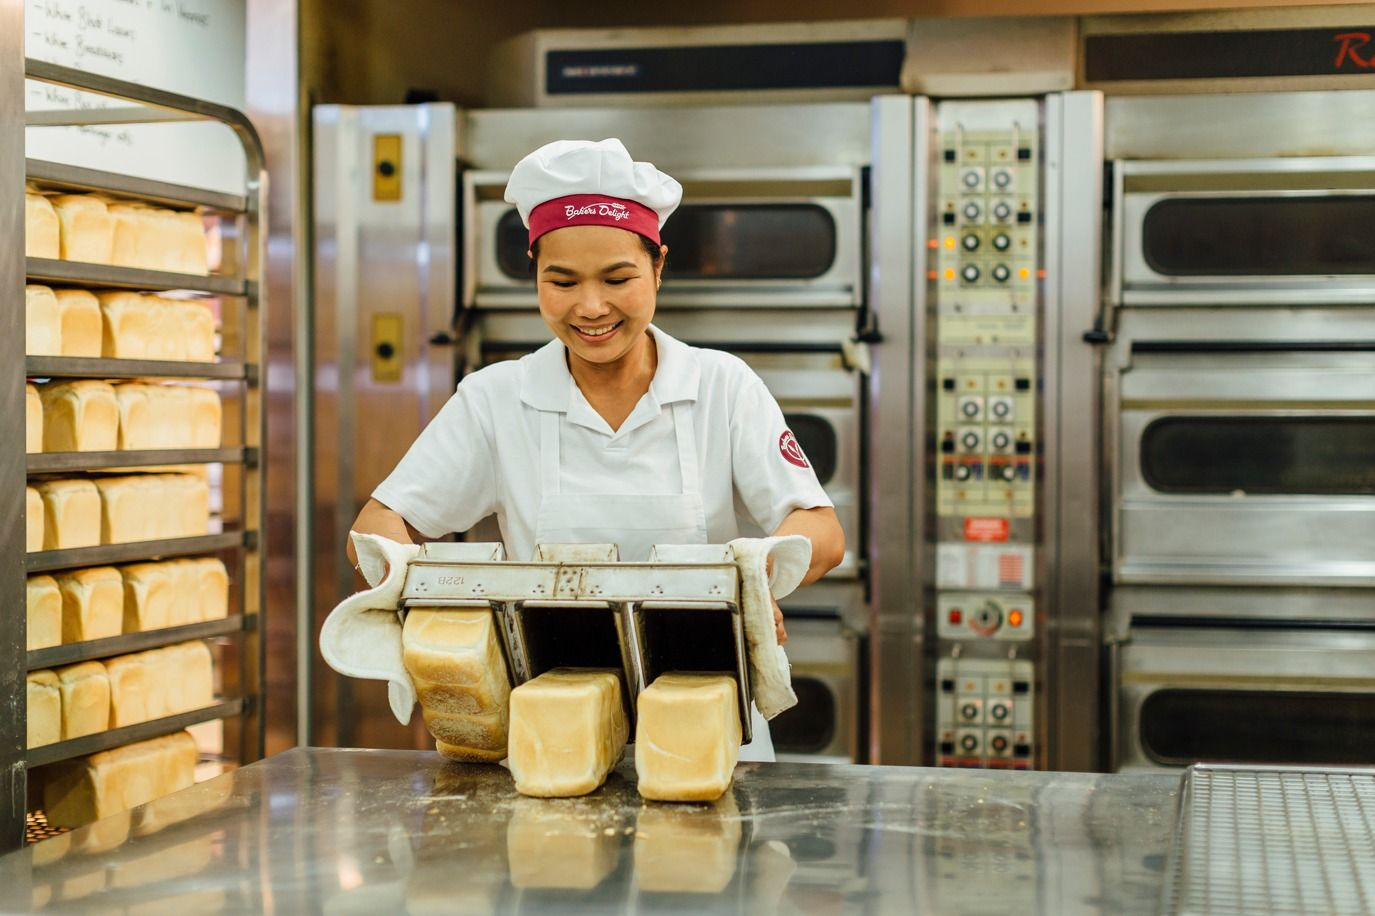 Bakers Delight adopts AI platform to help franchisees | Inside Franchise Business Executive